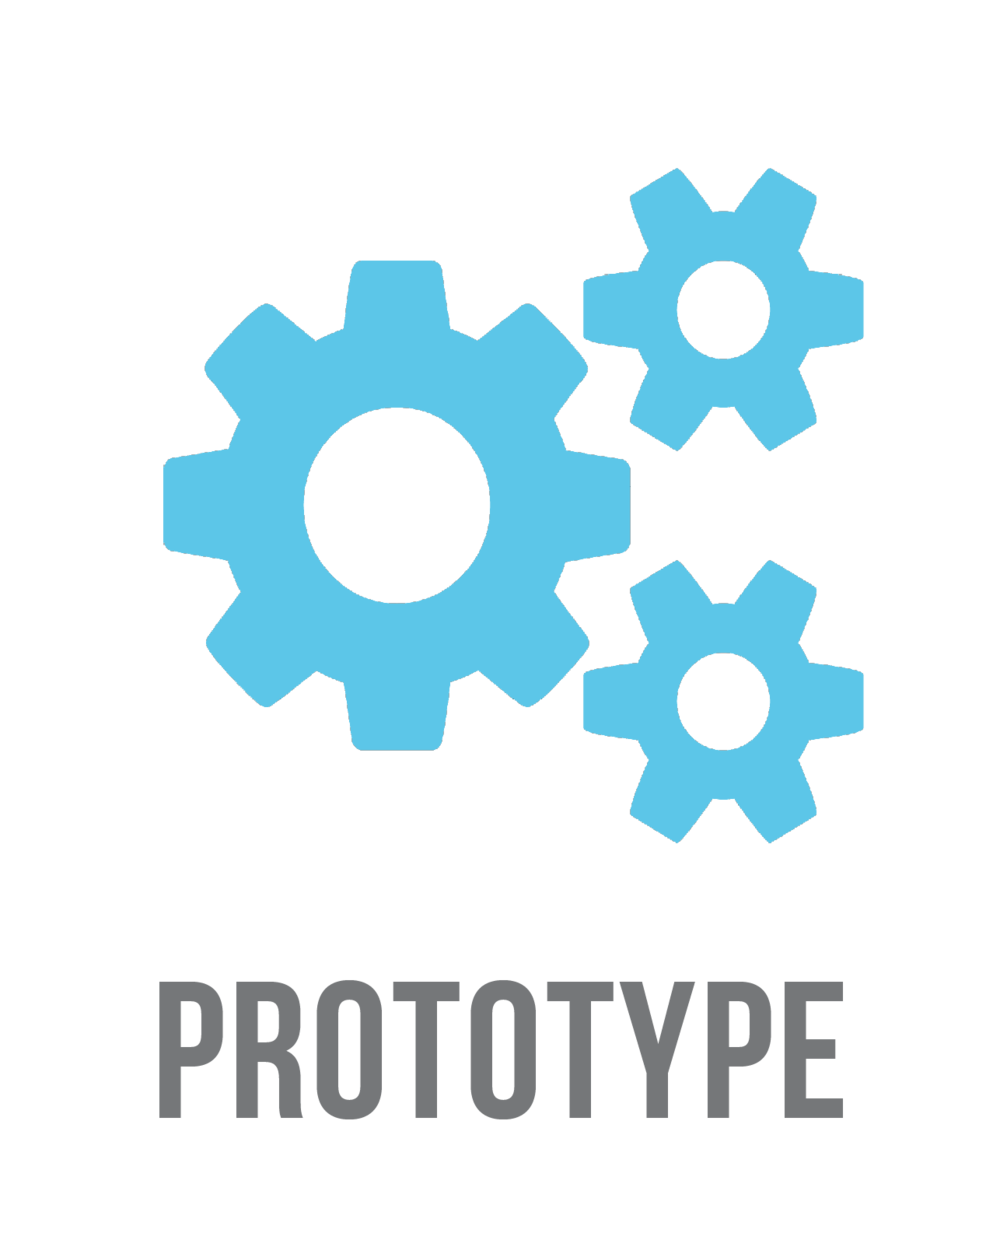 This workshop is designed for students to be able to create a usable prototype for one of their brainstormed ideas/solutions. This workshop should happen after idea brainstorming has been done, but before prototyping/testing is complete.